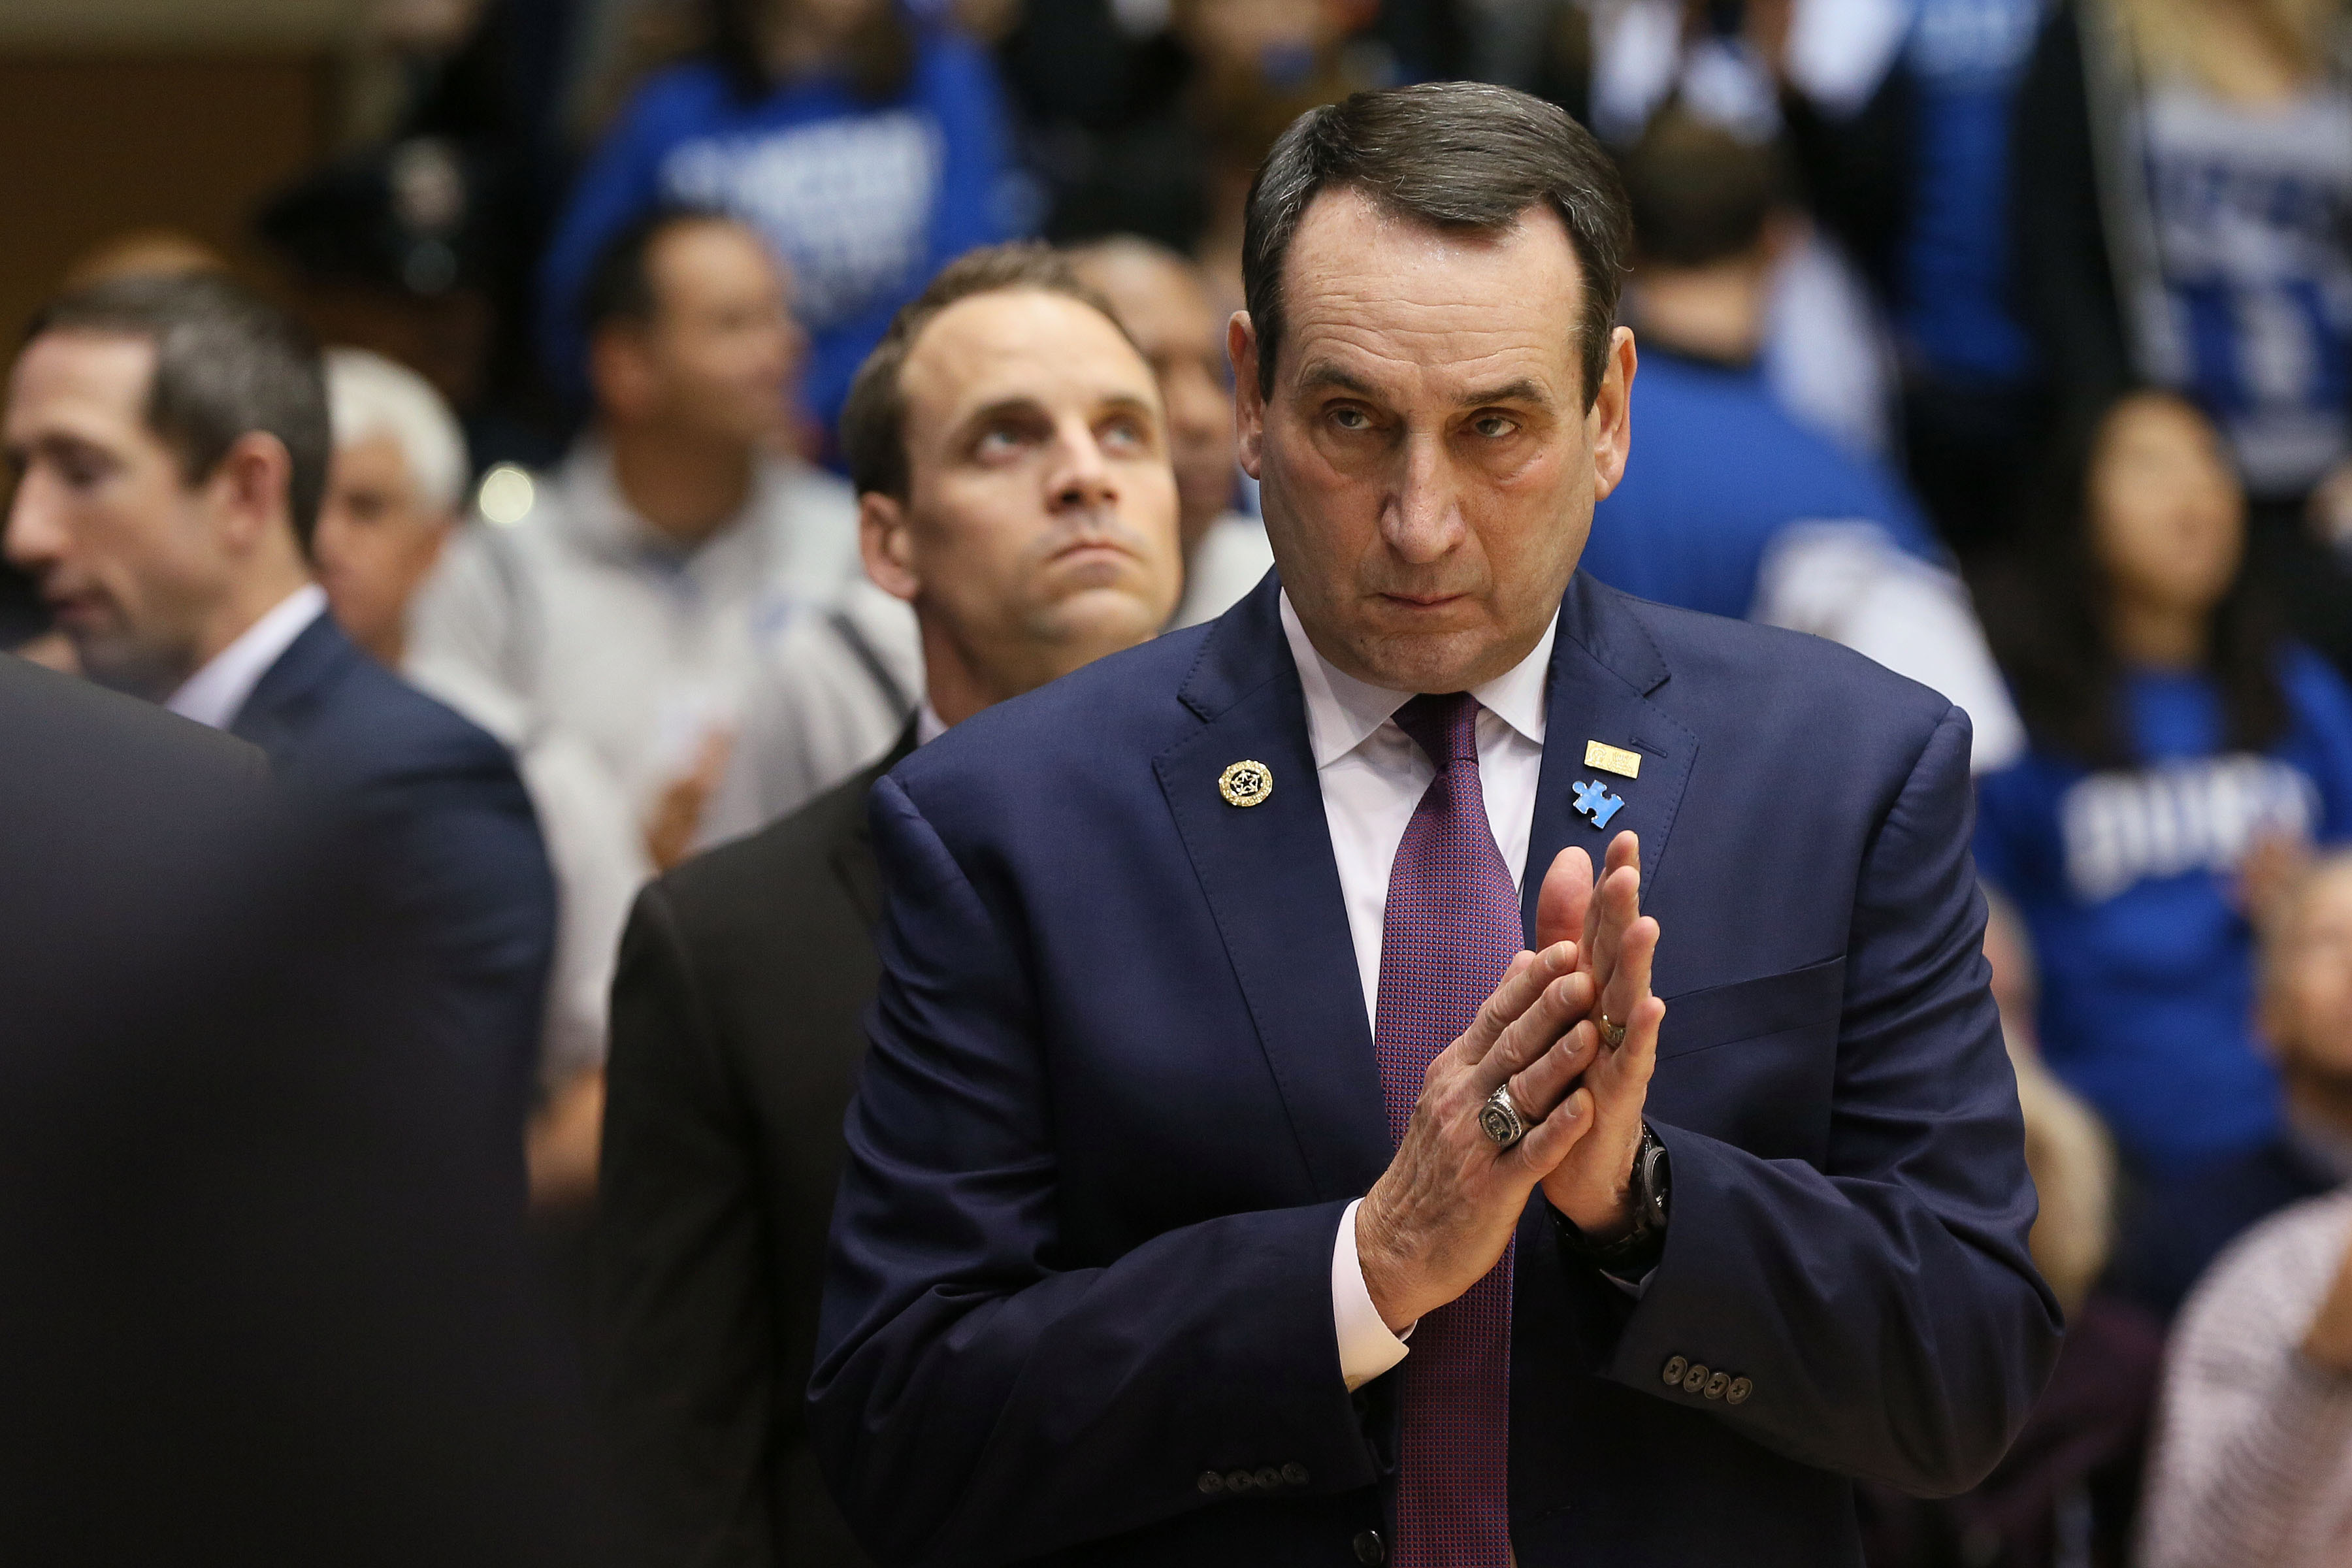 Feb 4, 2017; Durham, NC, USA; Duke Blue Devils head coach Mike Krzyzewski watches his team during player introductions before the start of their game against the Pittsburgh Panthers at Cameron Indoor Stadium. Mandatory Credit: Mark Dolejs-USA TODAY Sports